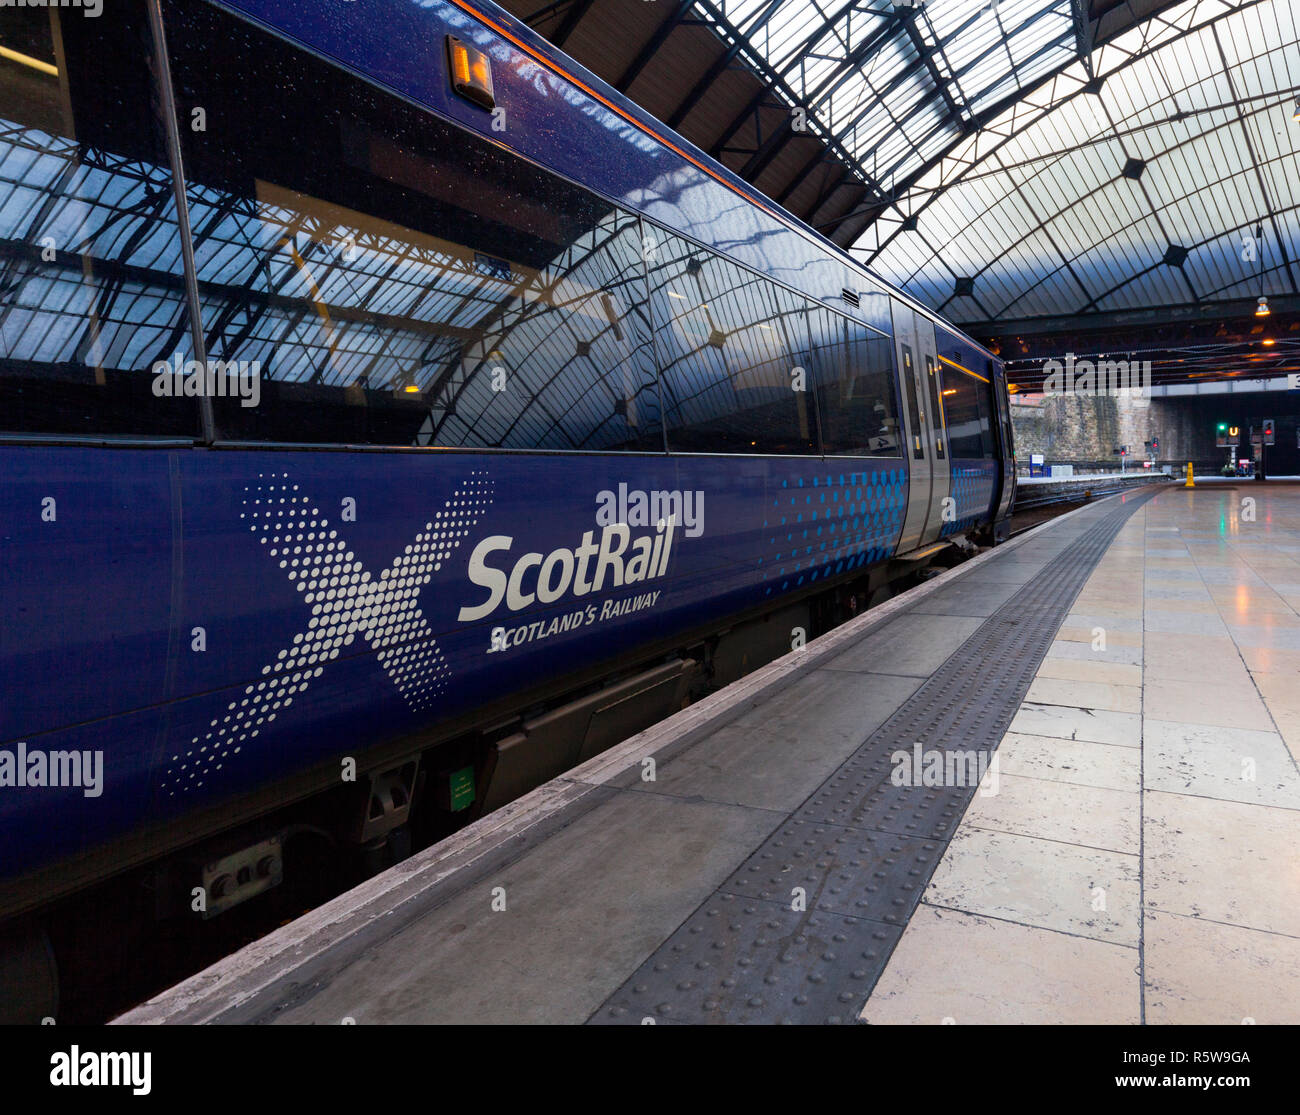 A Scotrail class 170 Turbostar train at Glasgow Queen street showing the Scotrail, Scotland's railway logo - Stock Image